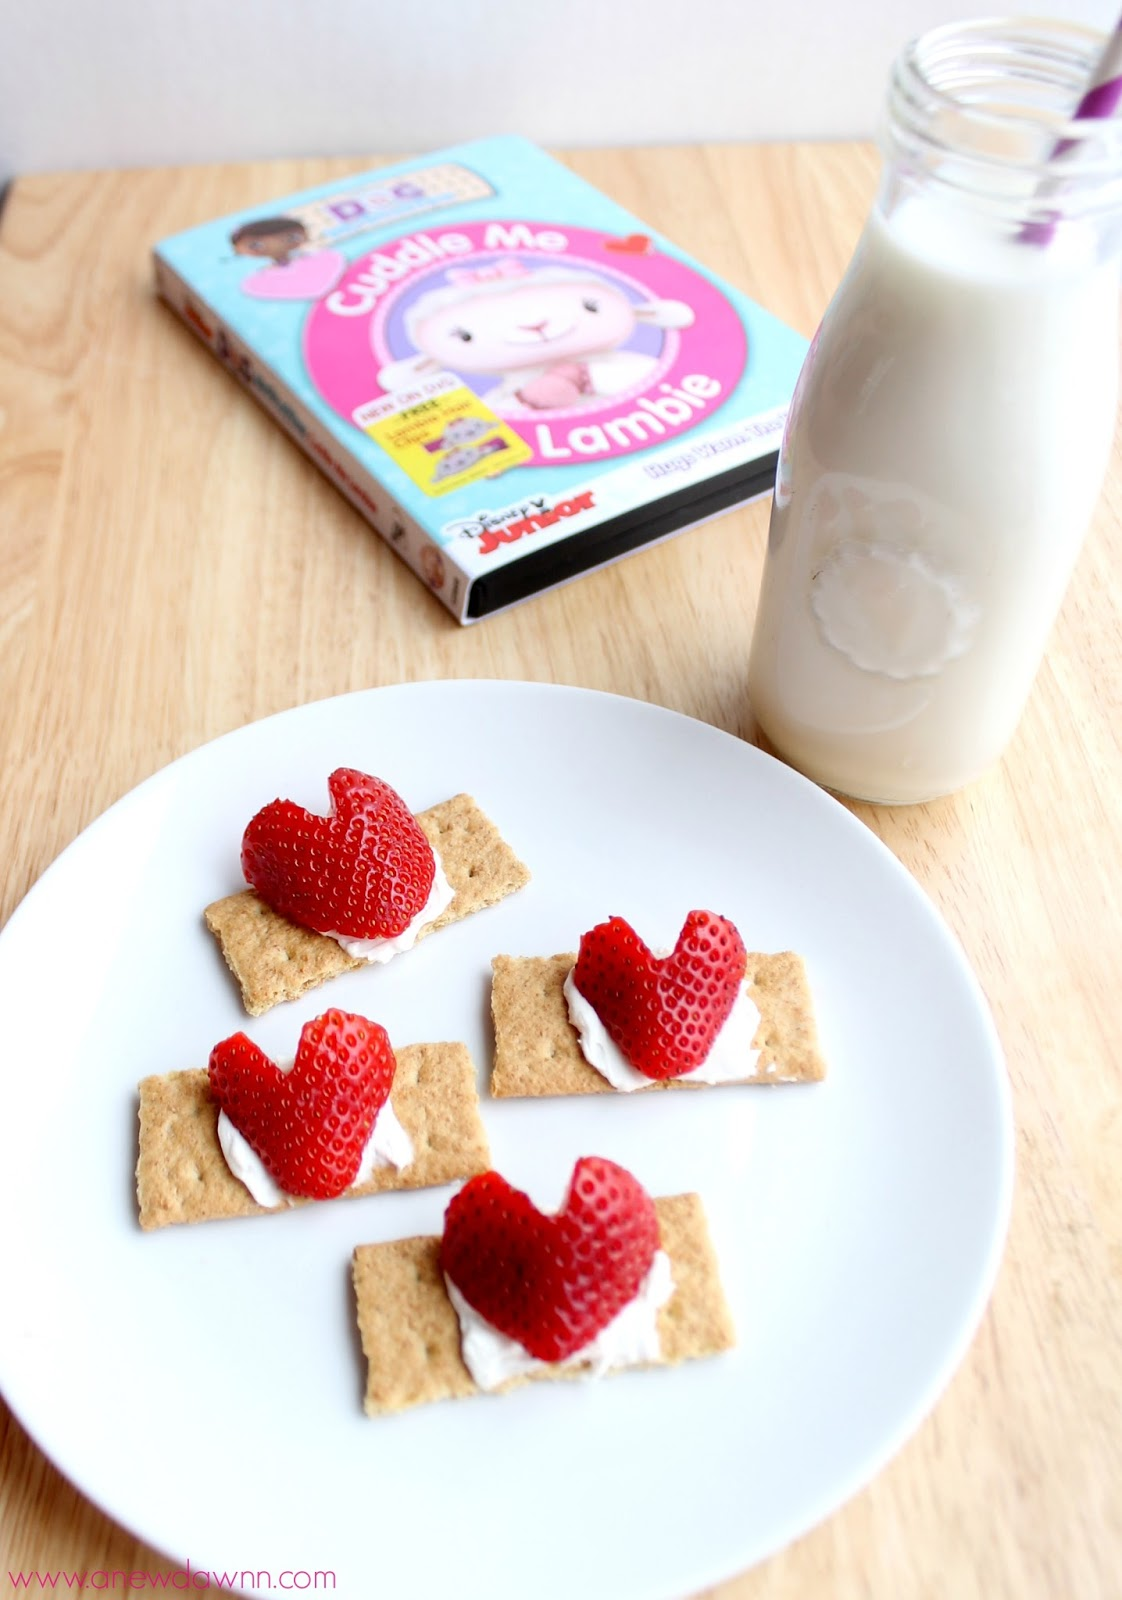 Doc McStuffins Snack Idea Cuddle Me Lambie,